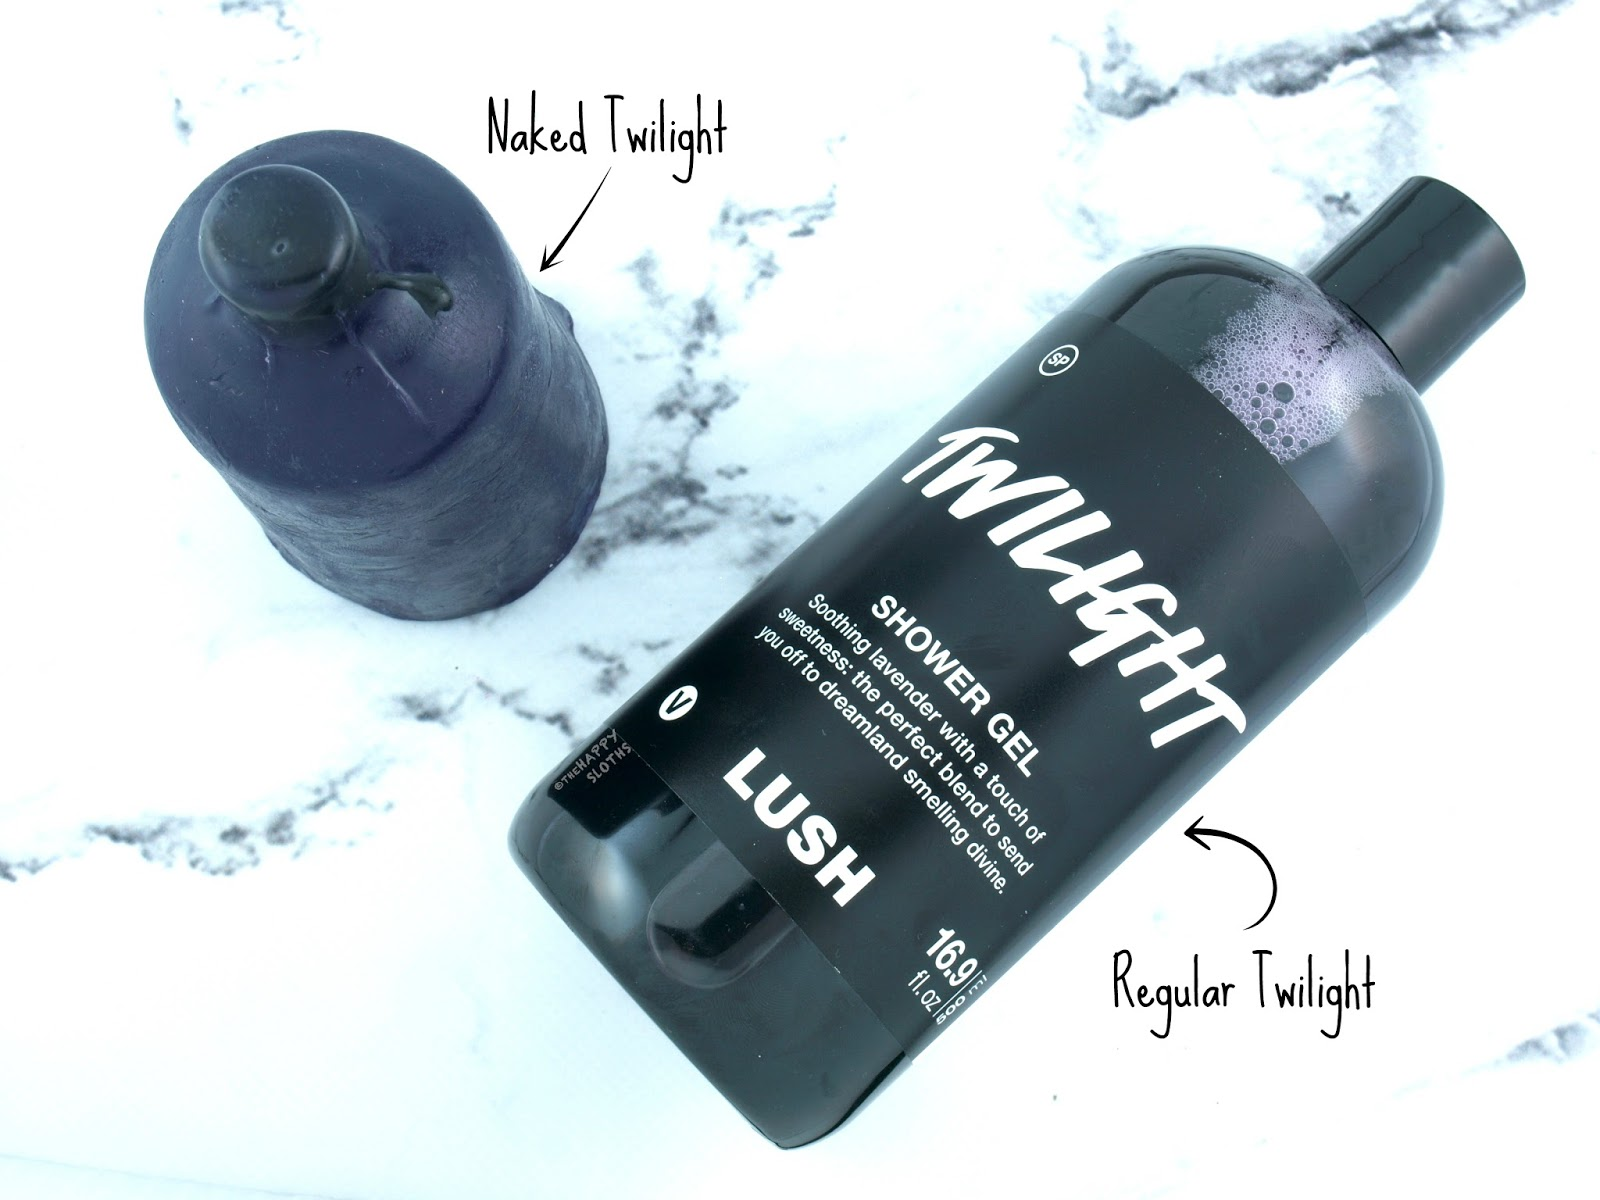 Lush Naked Twilight Shower Gel: Review